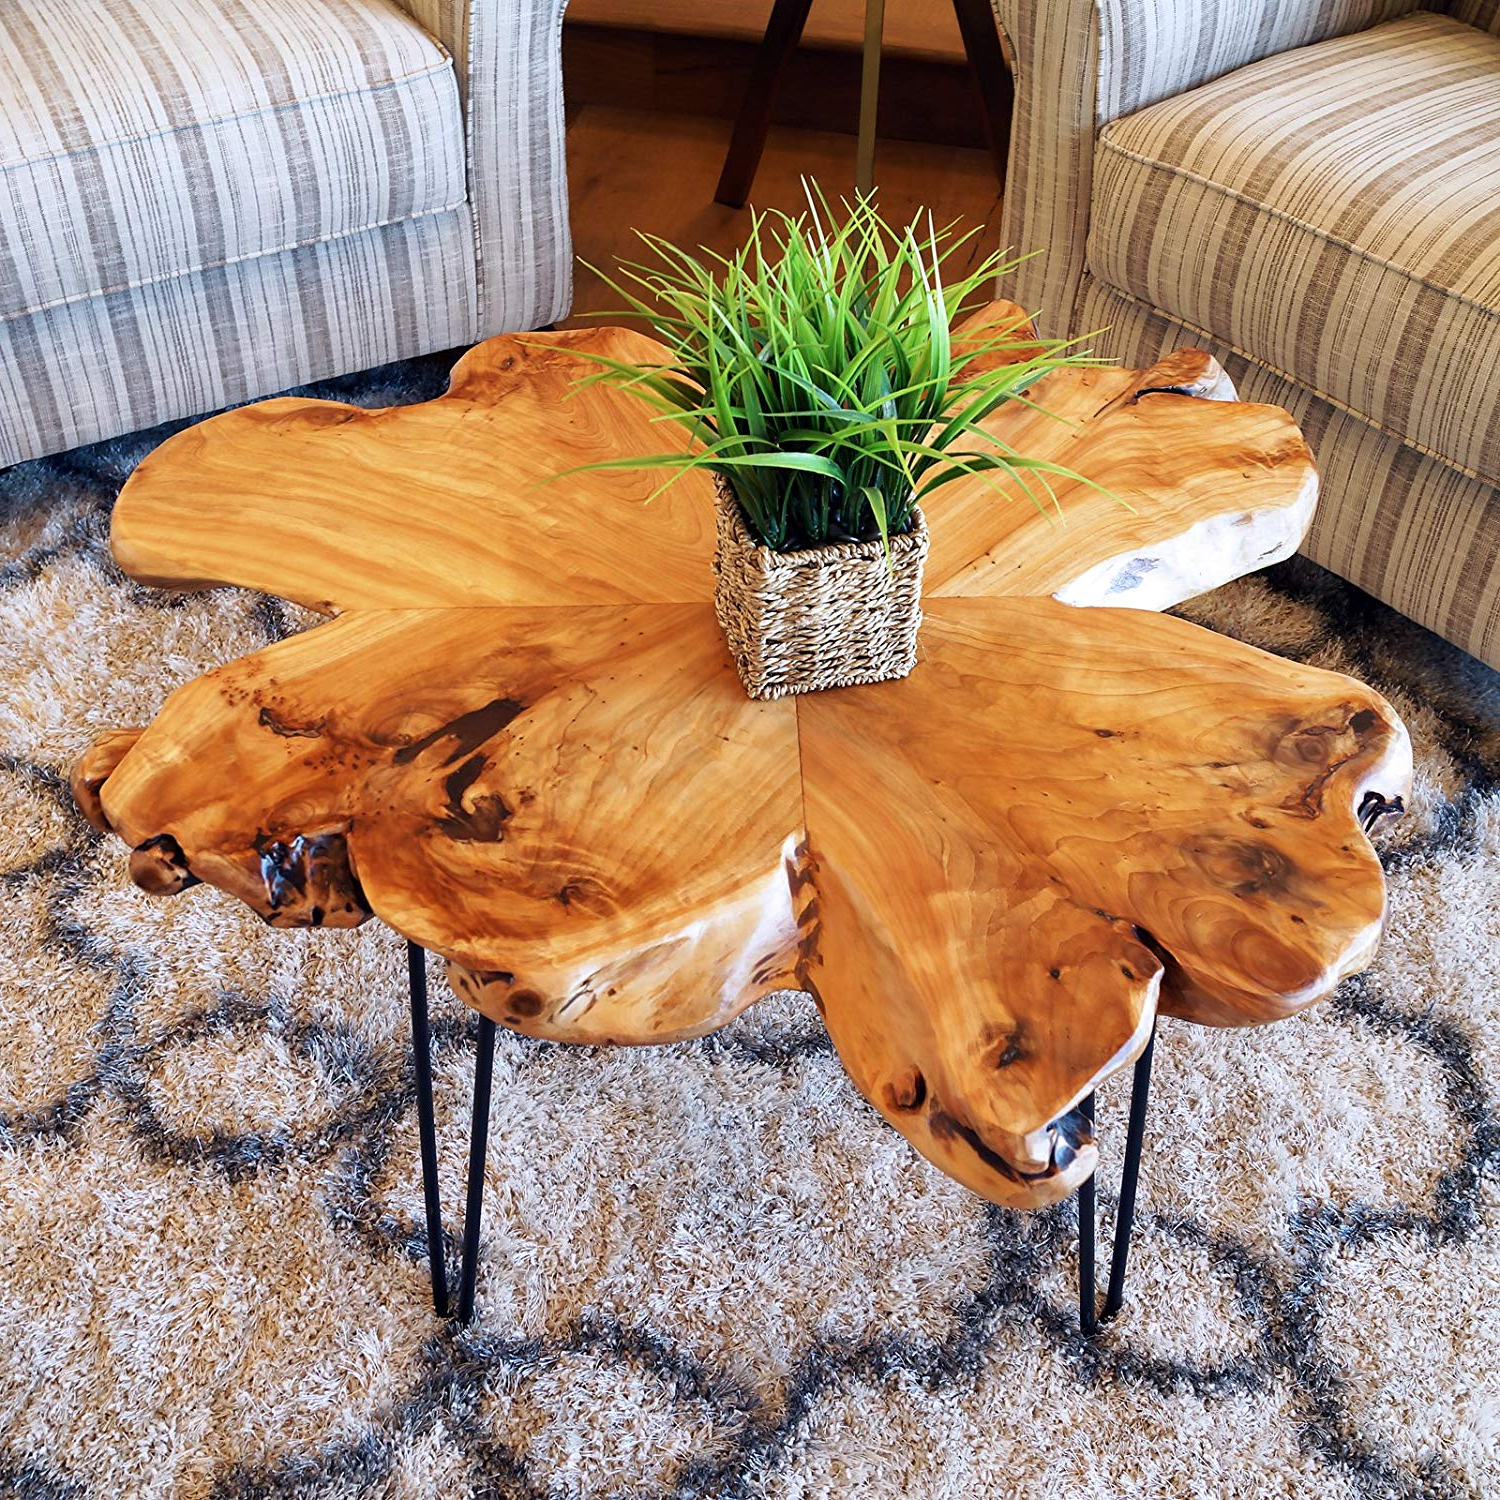 Welland Natural Edge Coffee Table, (Style D) With Regard To Current Acacia Dining Tables With Black Rocket Legs (View 15 of 25)